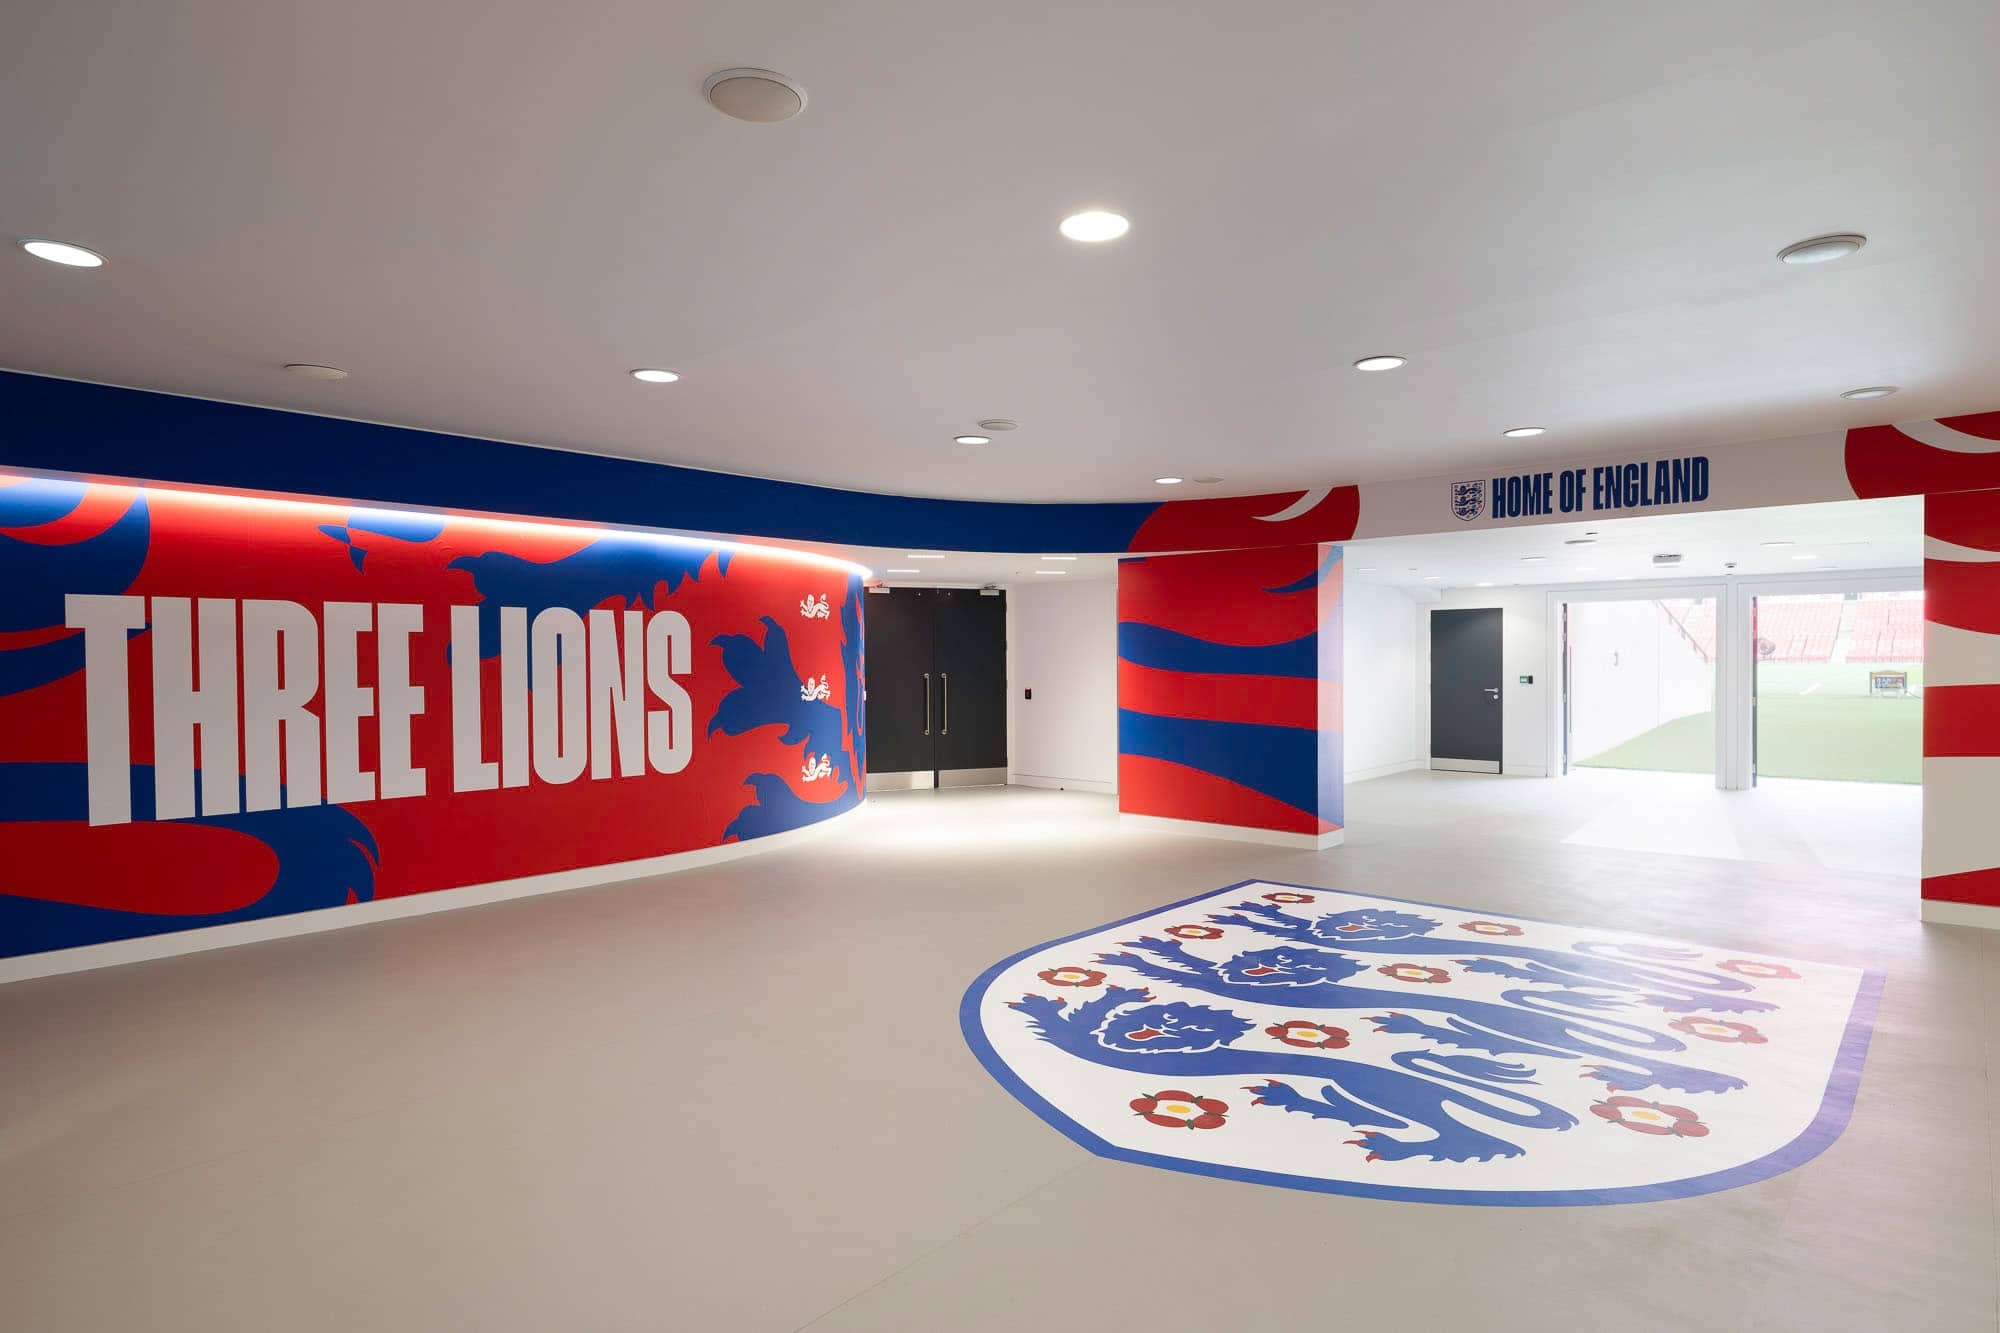 https://wooarchitects.com/wp-content/uploads/2020/07/Wembley-Changing-Rooms-photo-by-Tom-Bird-33-web-1.jpg